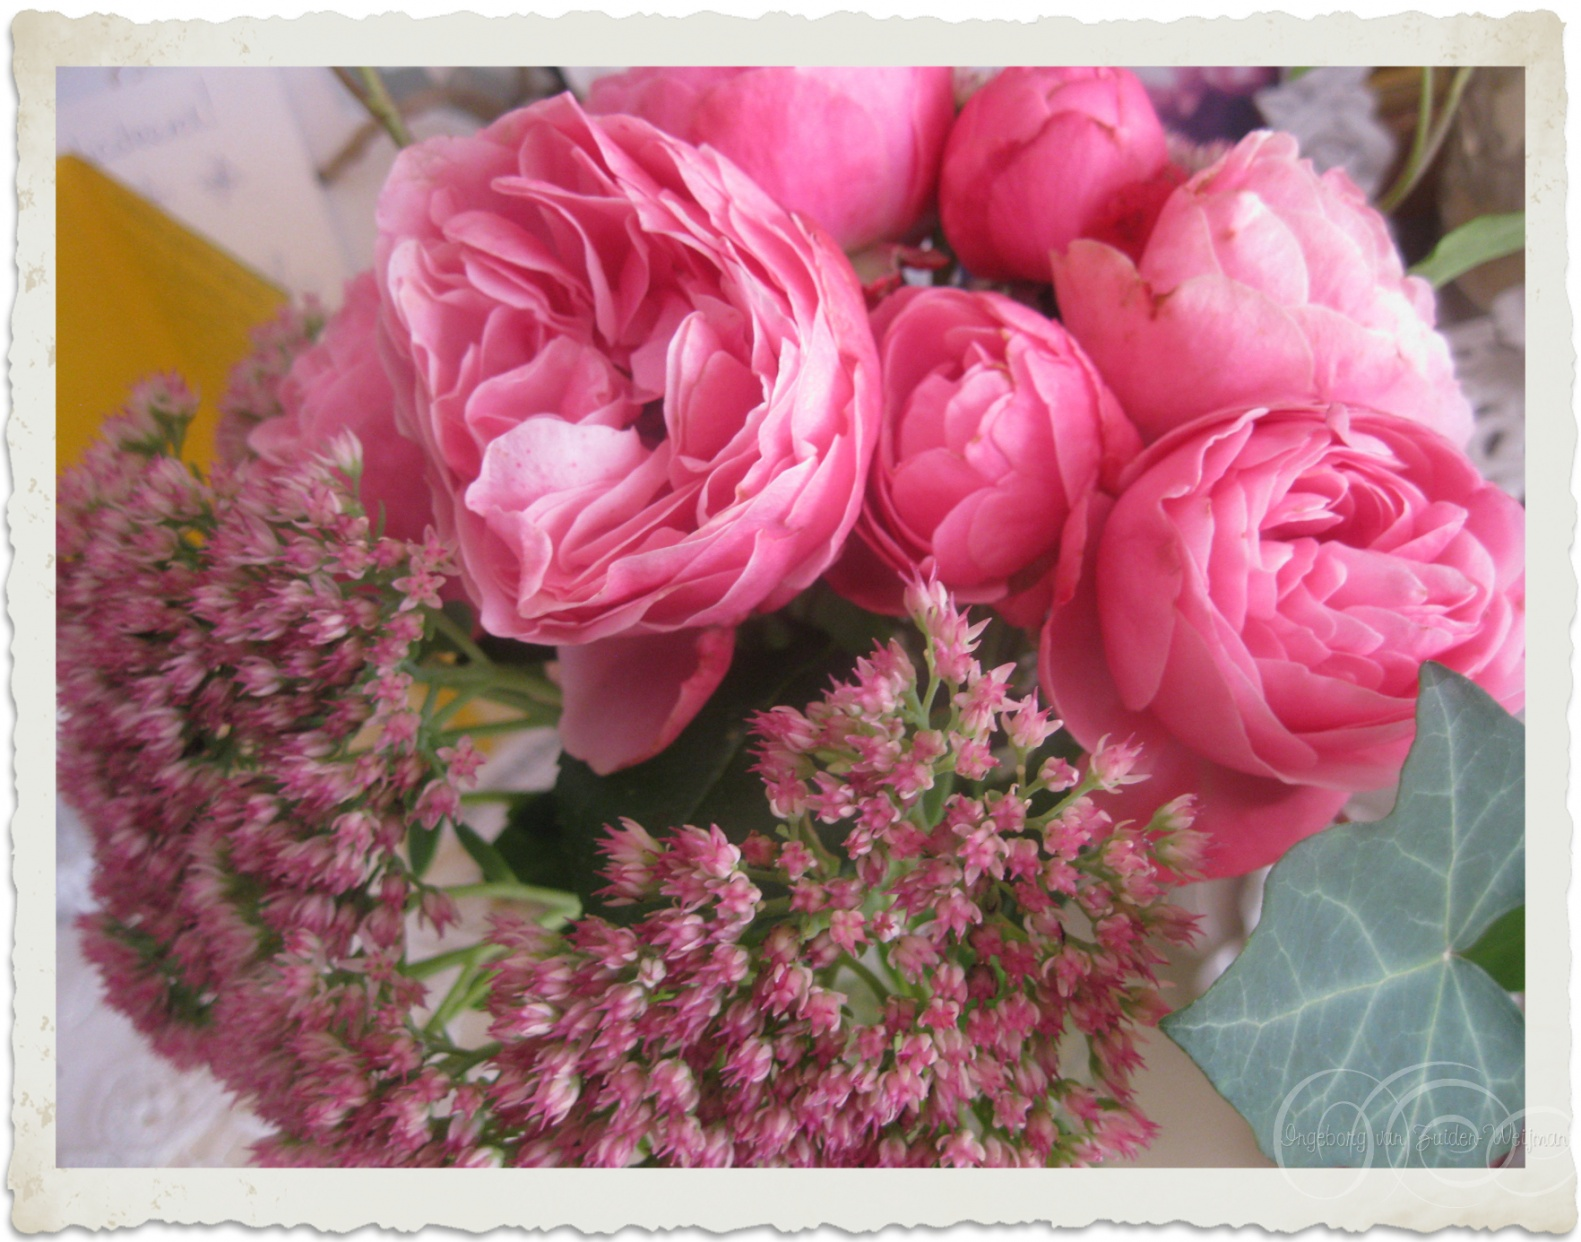 Roses and Sedum from the garden